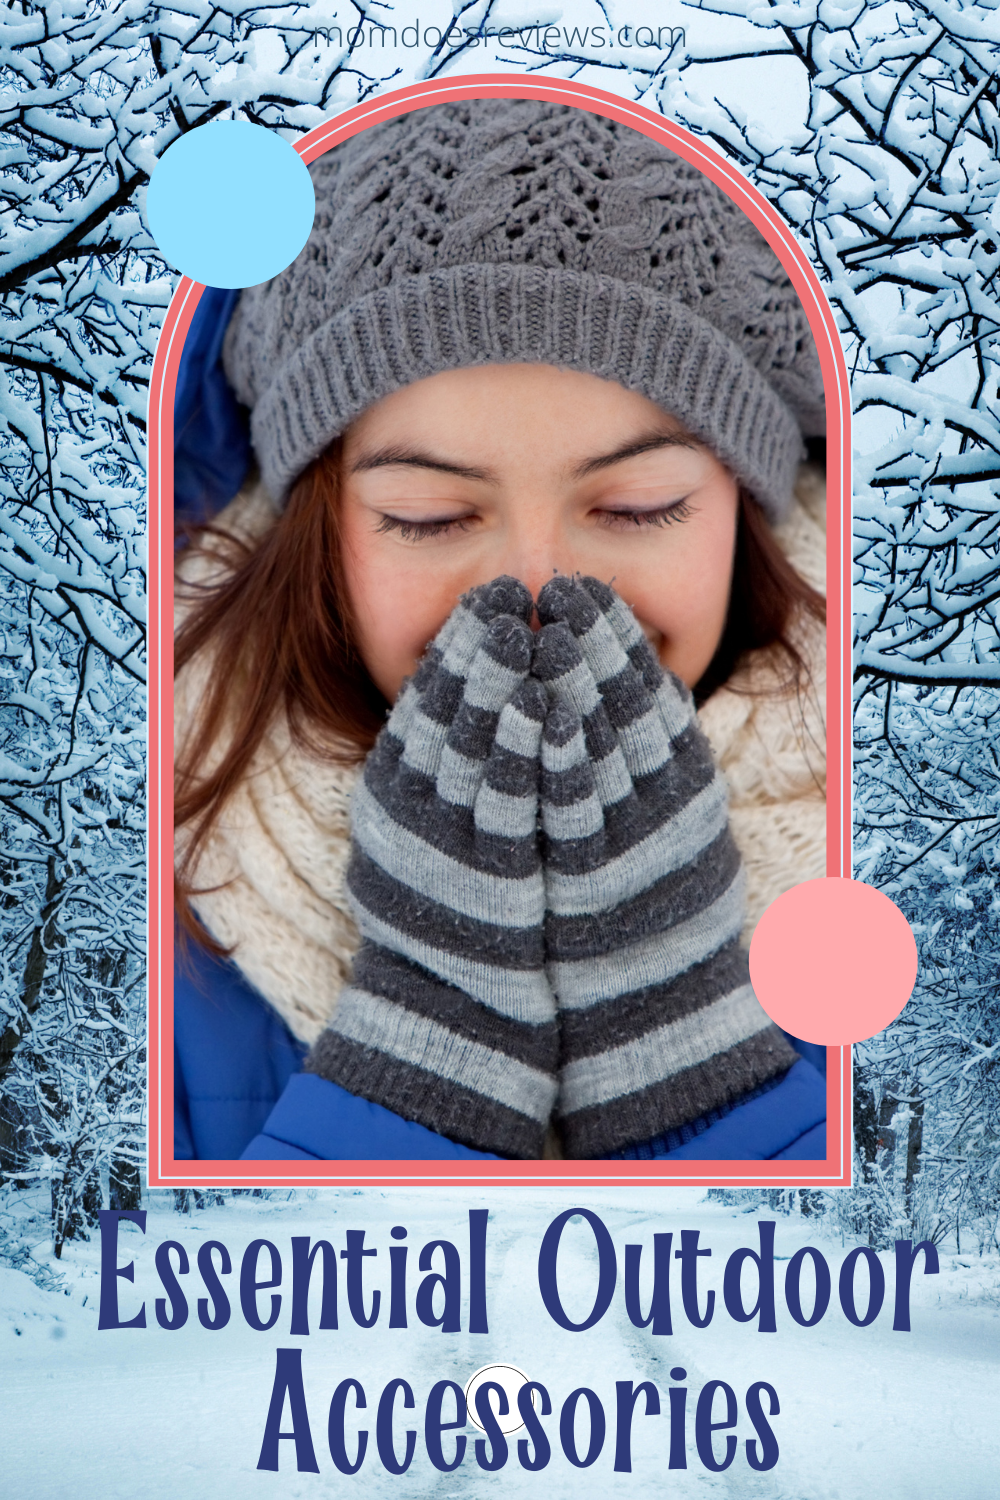 Winter Accessories for Women to Make You Look and Feel Good